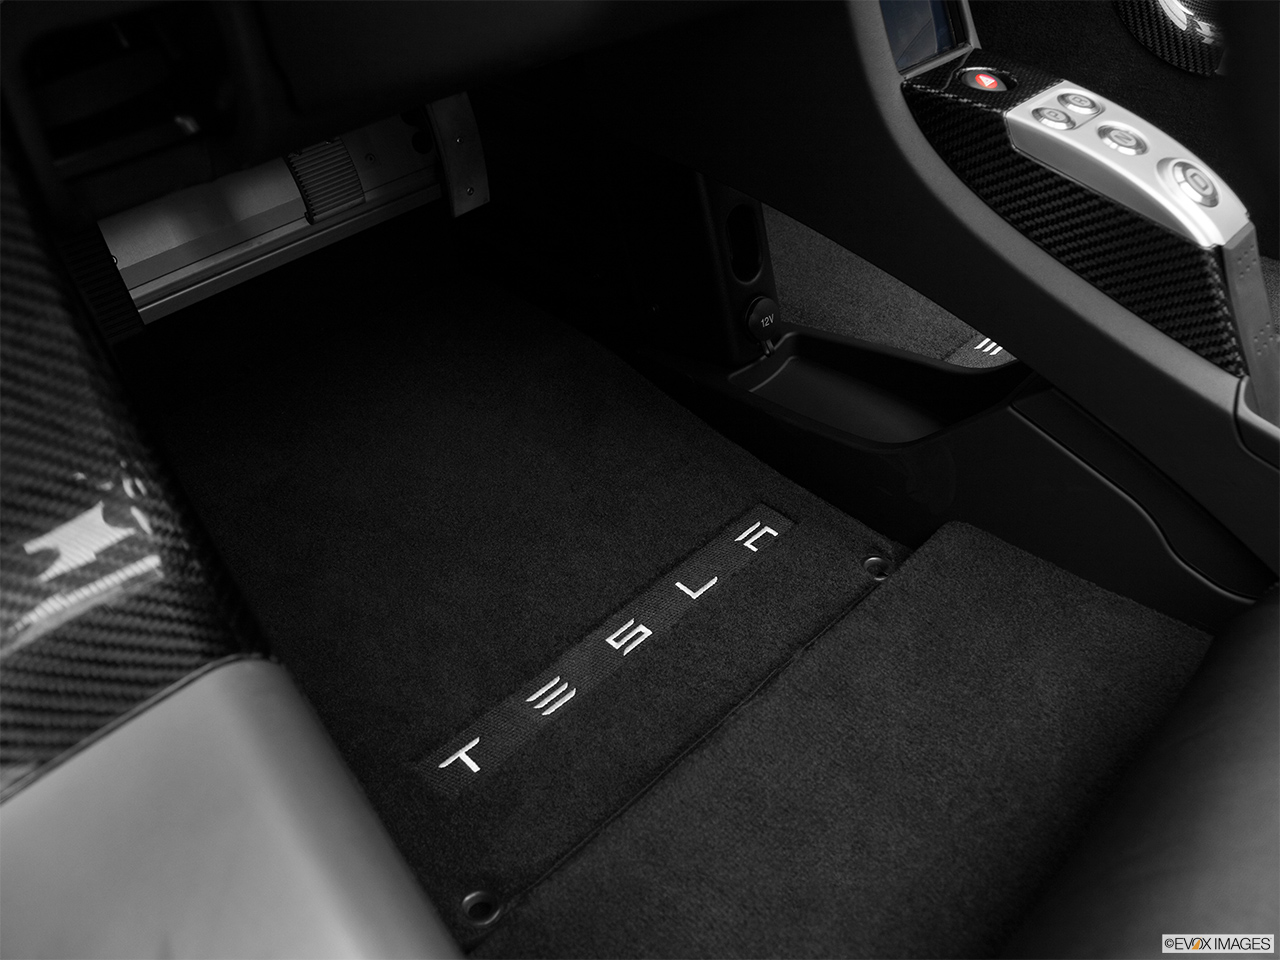 2010 Tesla Roadster sport Driver's floor mat and pedals. Mid-seat level from outside looking in.